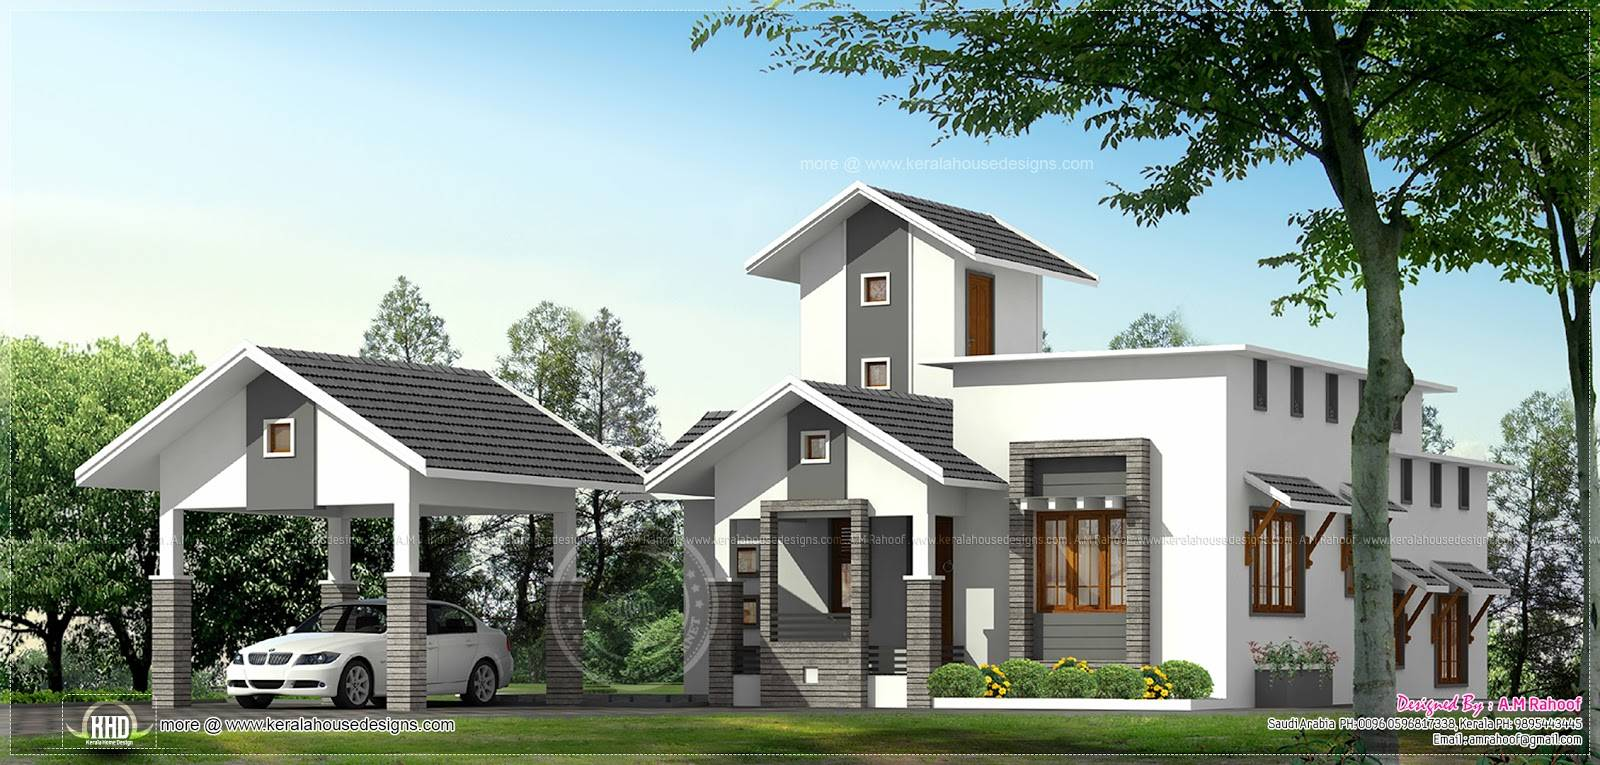 attractive car porch designs for houses #3: Car porch designs for houses